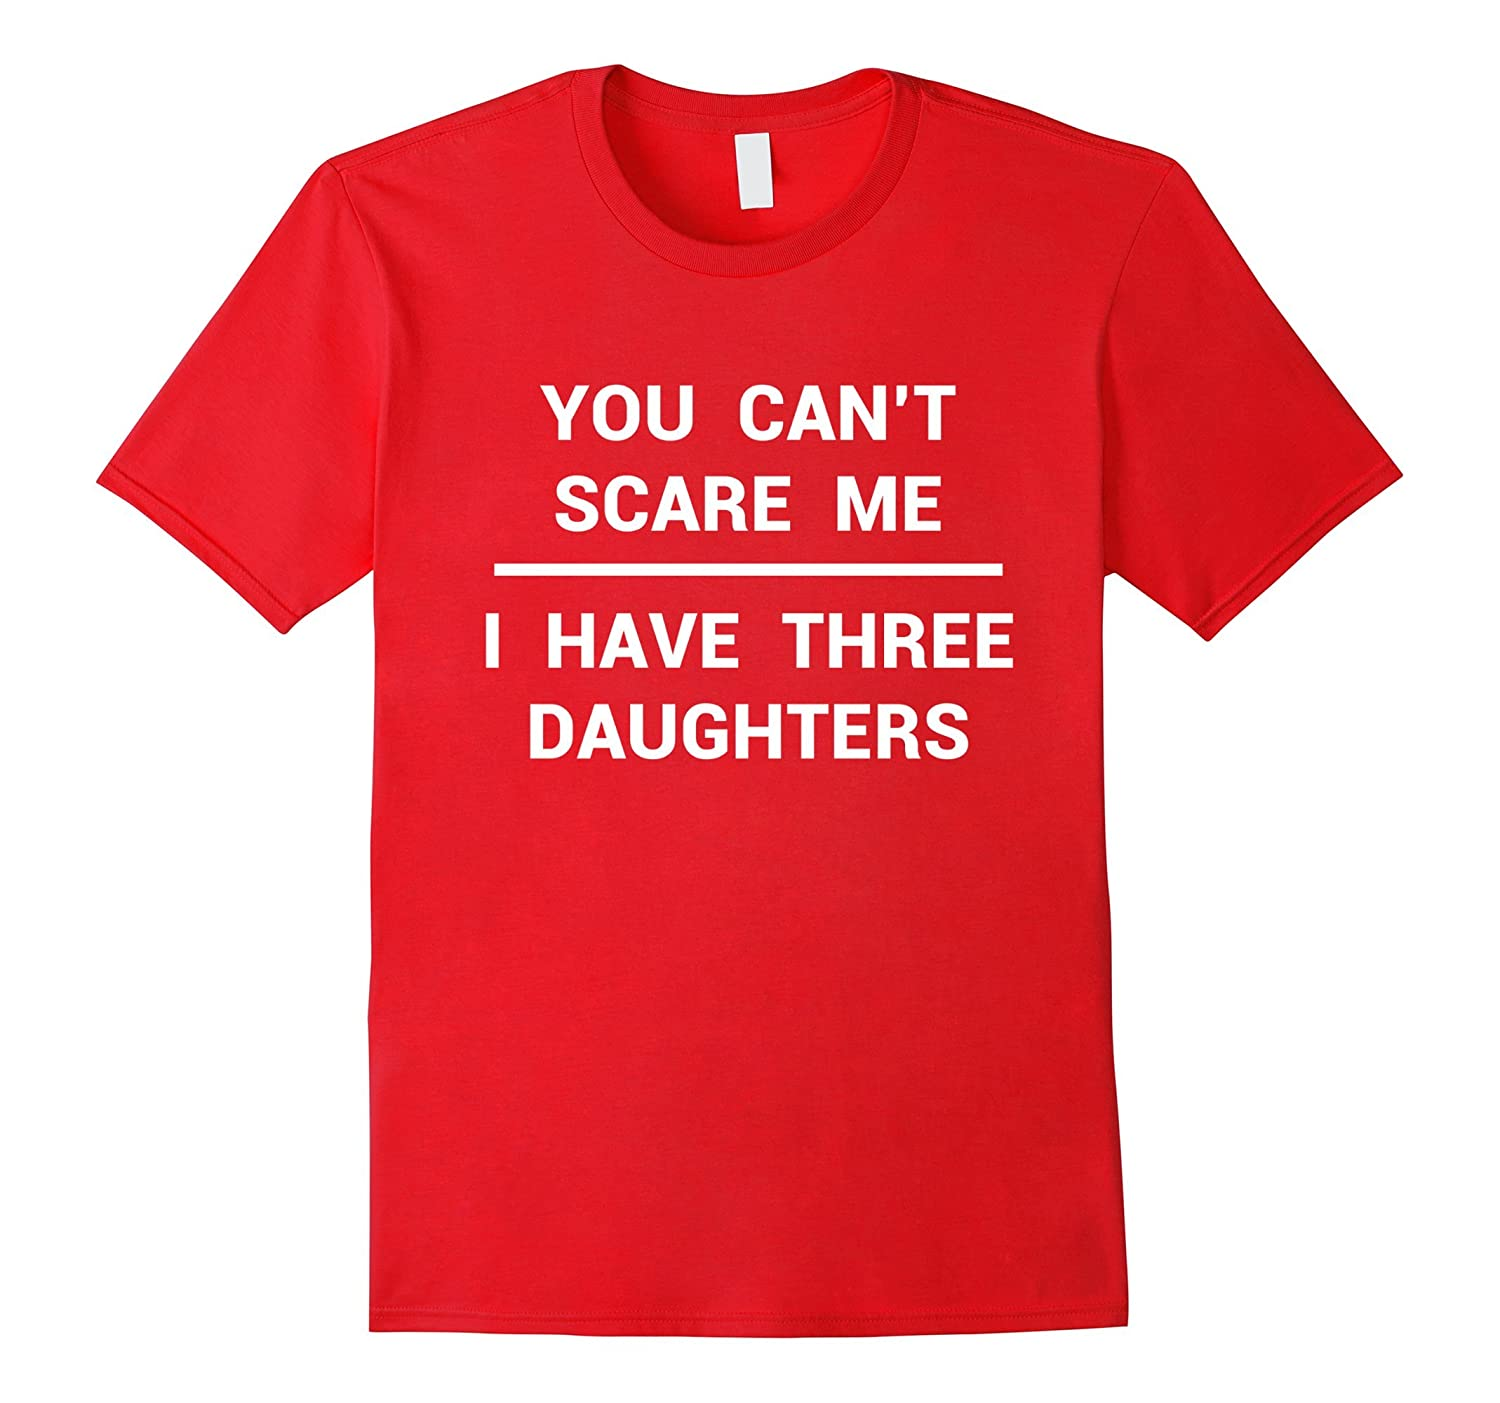 3 Daughters Shirt Funny Fathers Day Gift Dad Husband Grandpa-TH